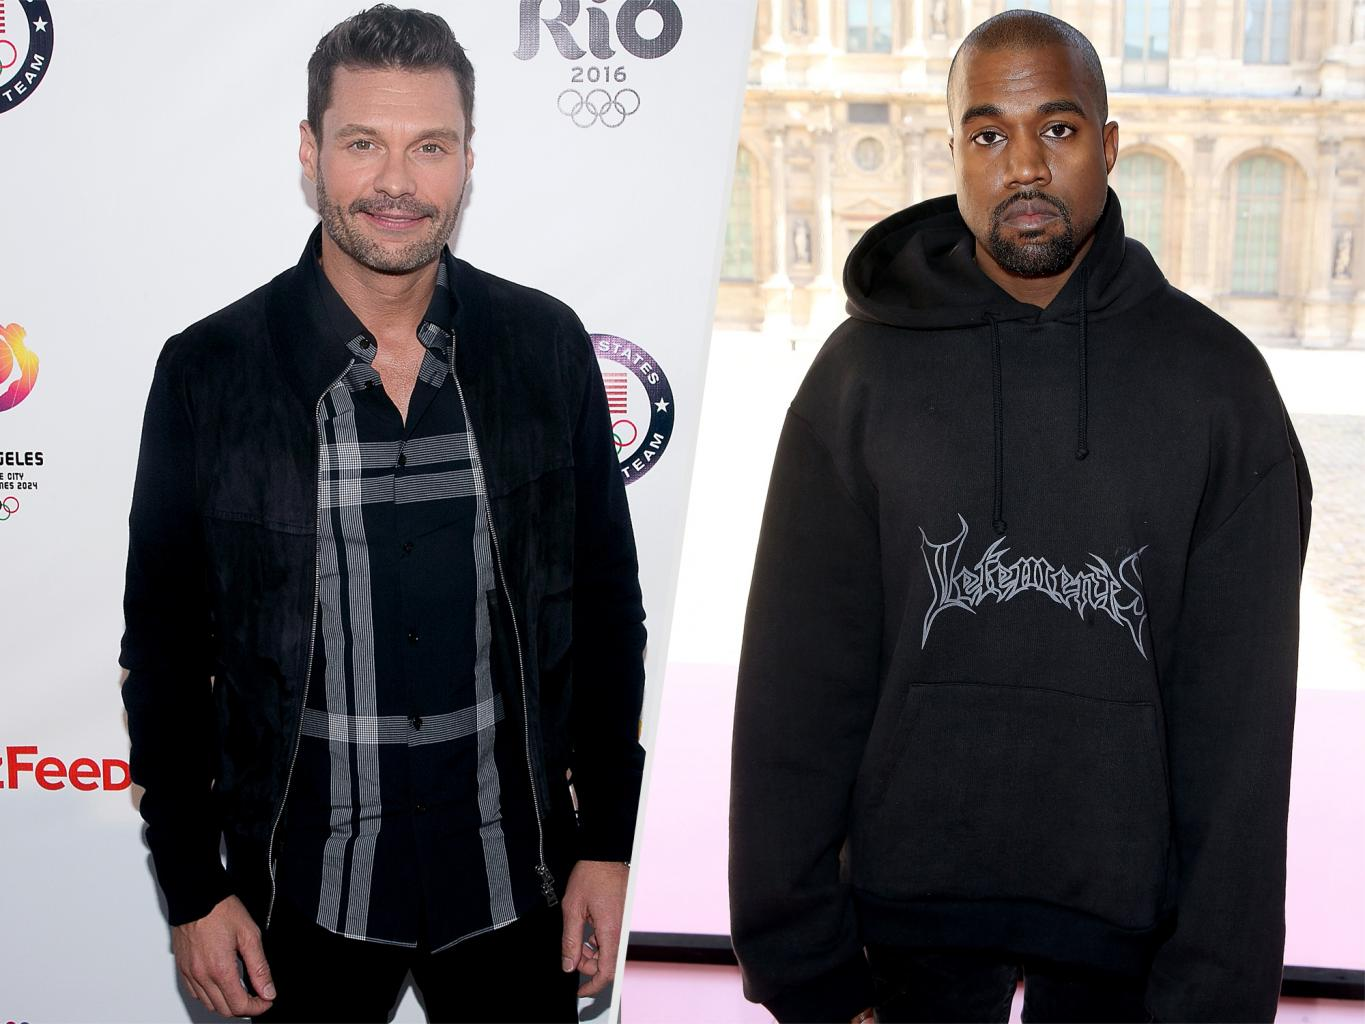 Ryan Seacrest Says 'Things Are Going Better' for Kanye West as He Continues to Live Apart from Family